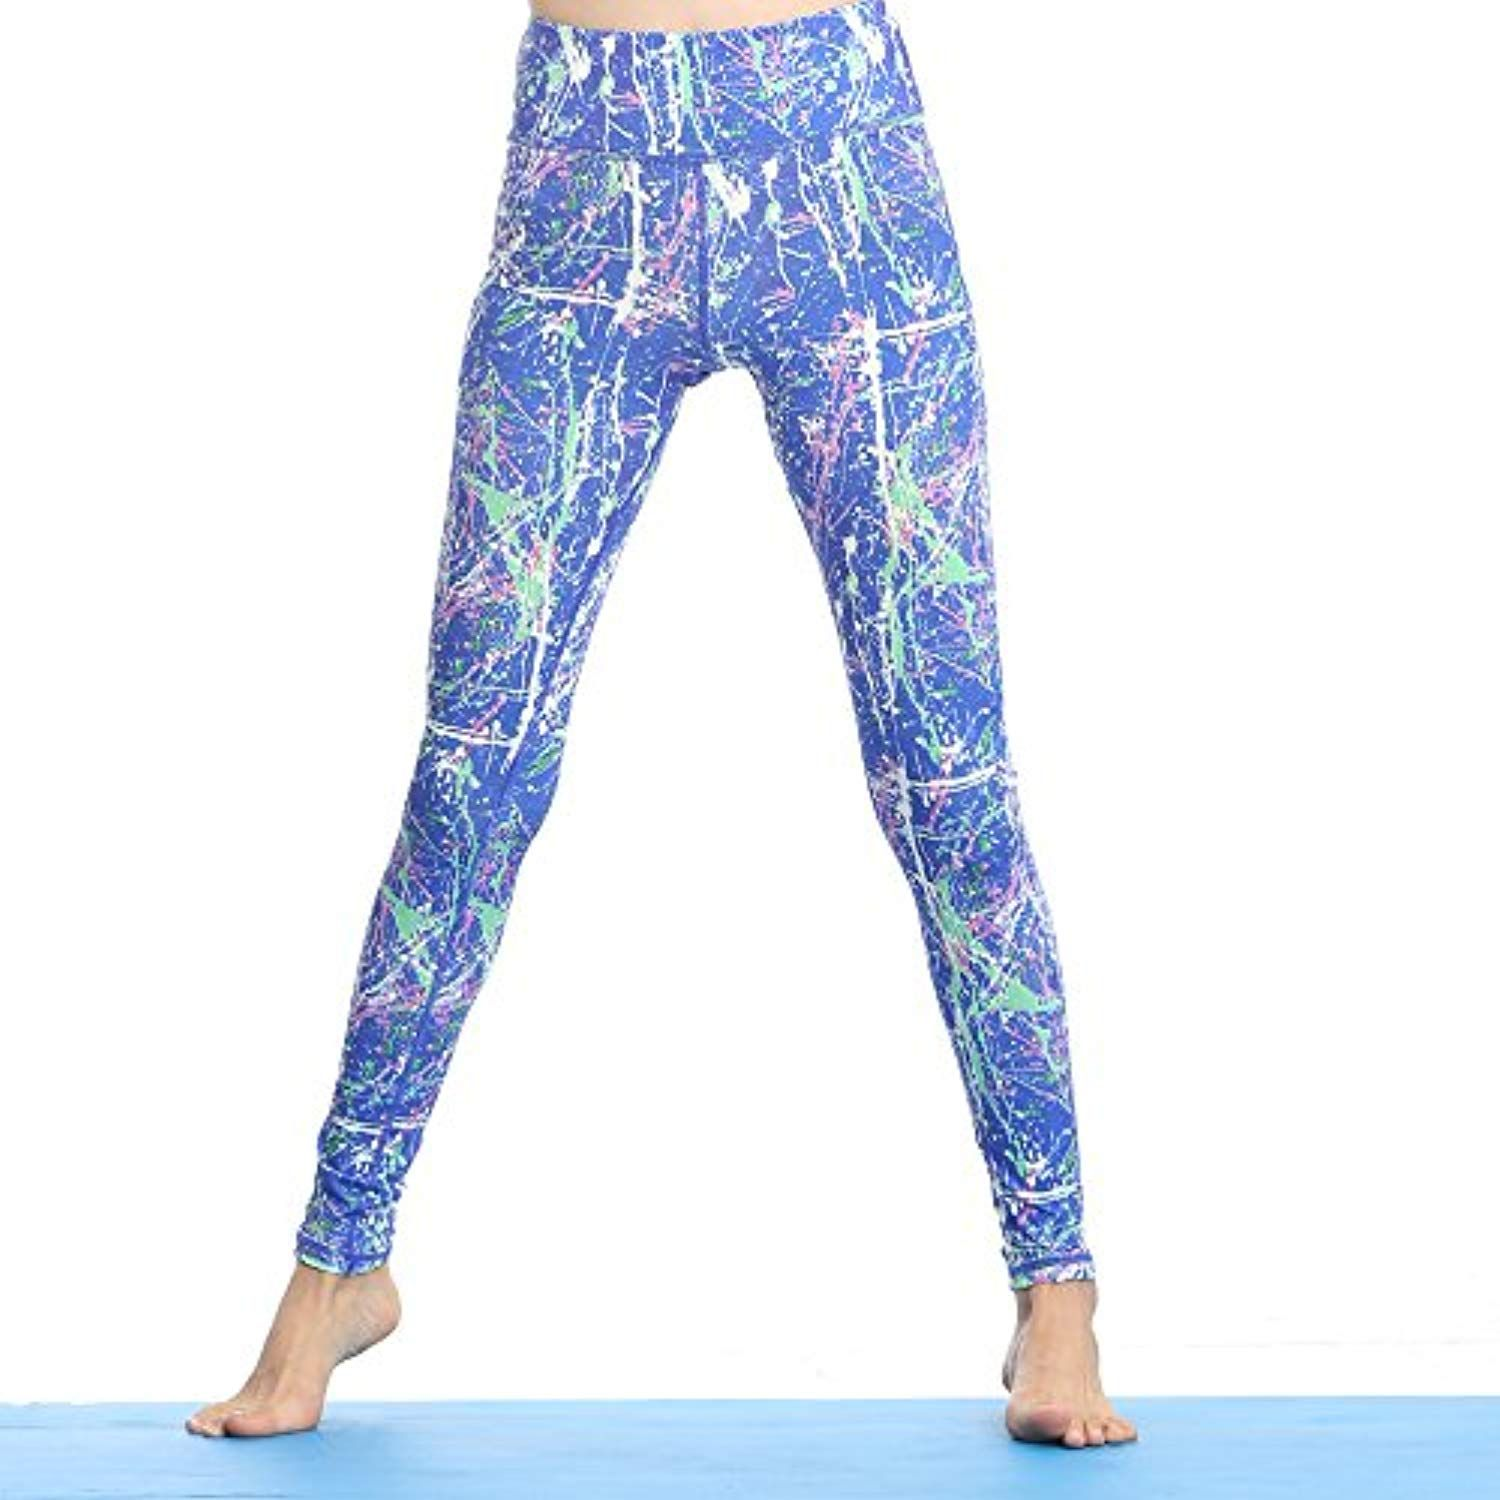 857c6a6f40 Women's Blue Print Yoga Pants Starry Sky Leggings Flexible Workout Fitness  Leggings -- Continue to the product at the image link.